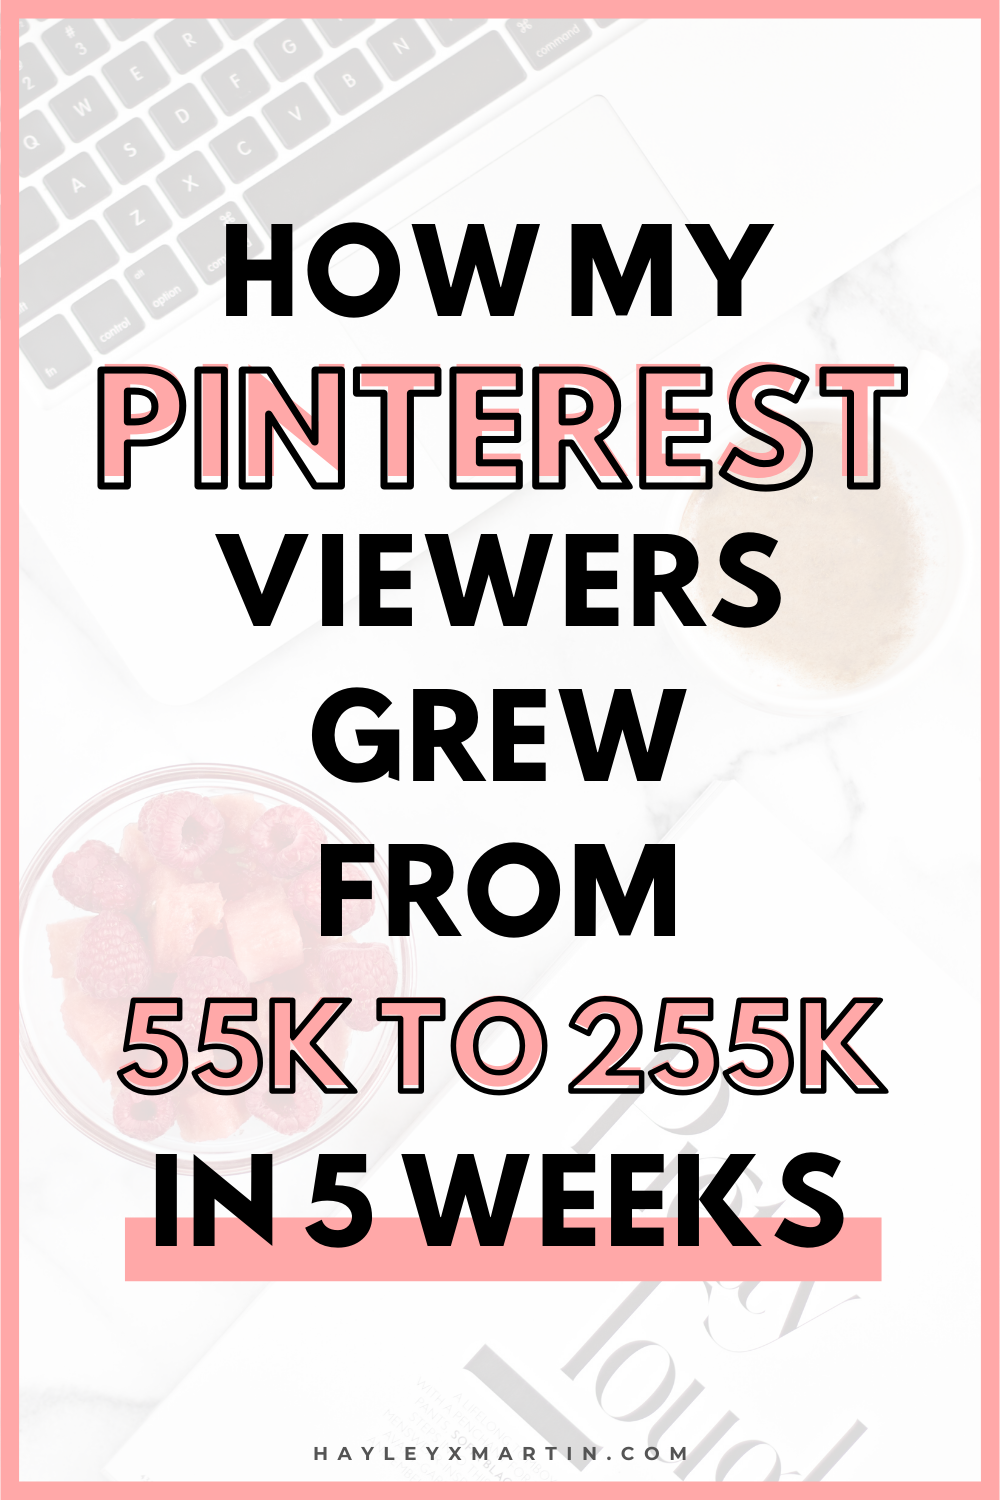 HOW MY PINTEREST VIEWERS GREW FROM 55K TO 255K IN 5 WEEKS | HAYLEYXMARTIN